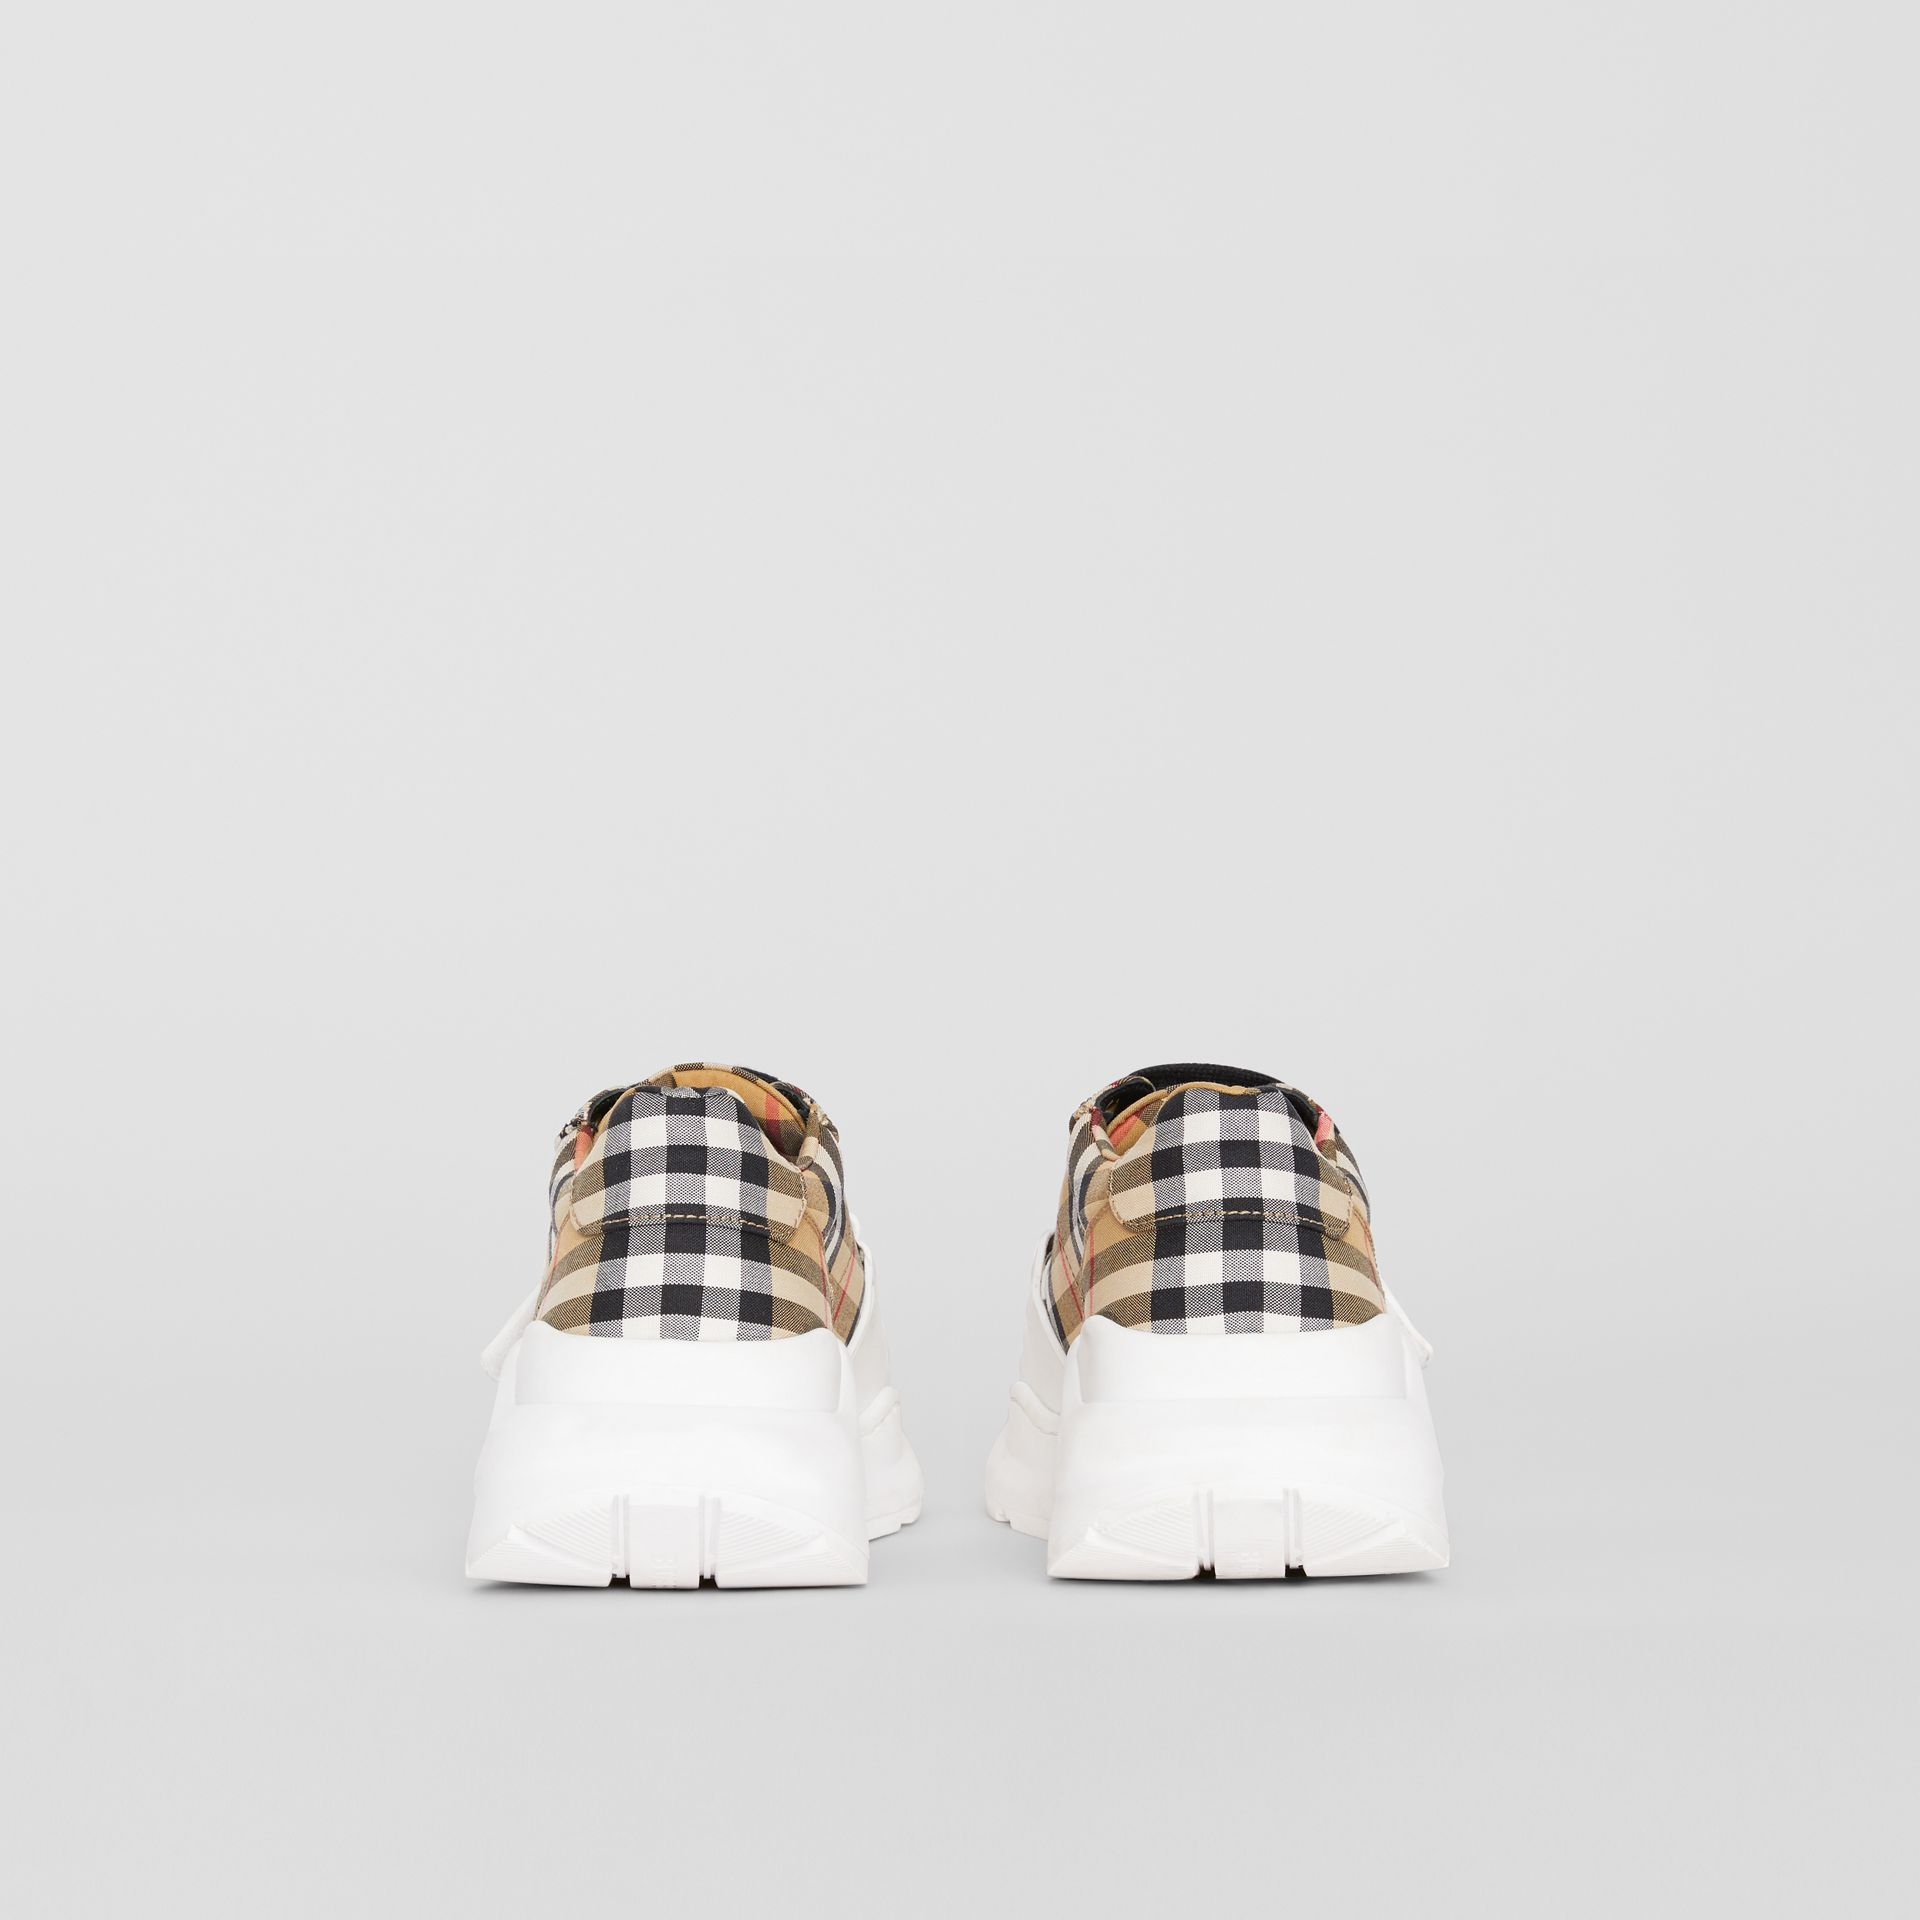 Sneakers en coton Vintage check (Jaune Antique) - Femme | Burberry Canada - photo de la galerie 4